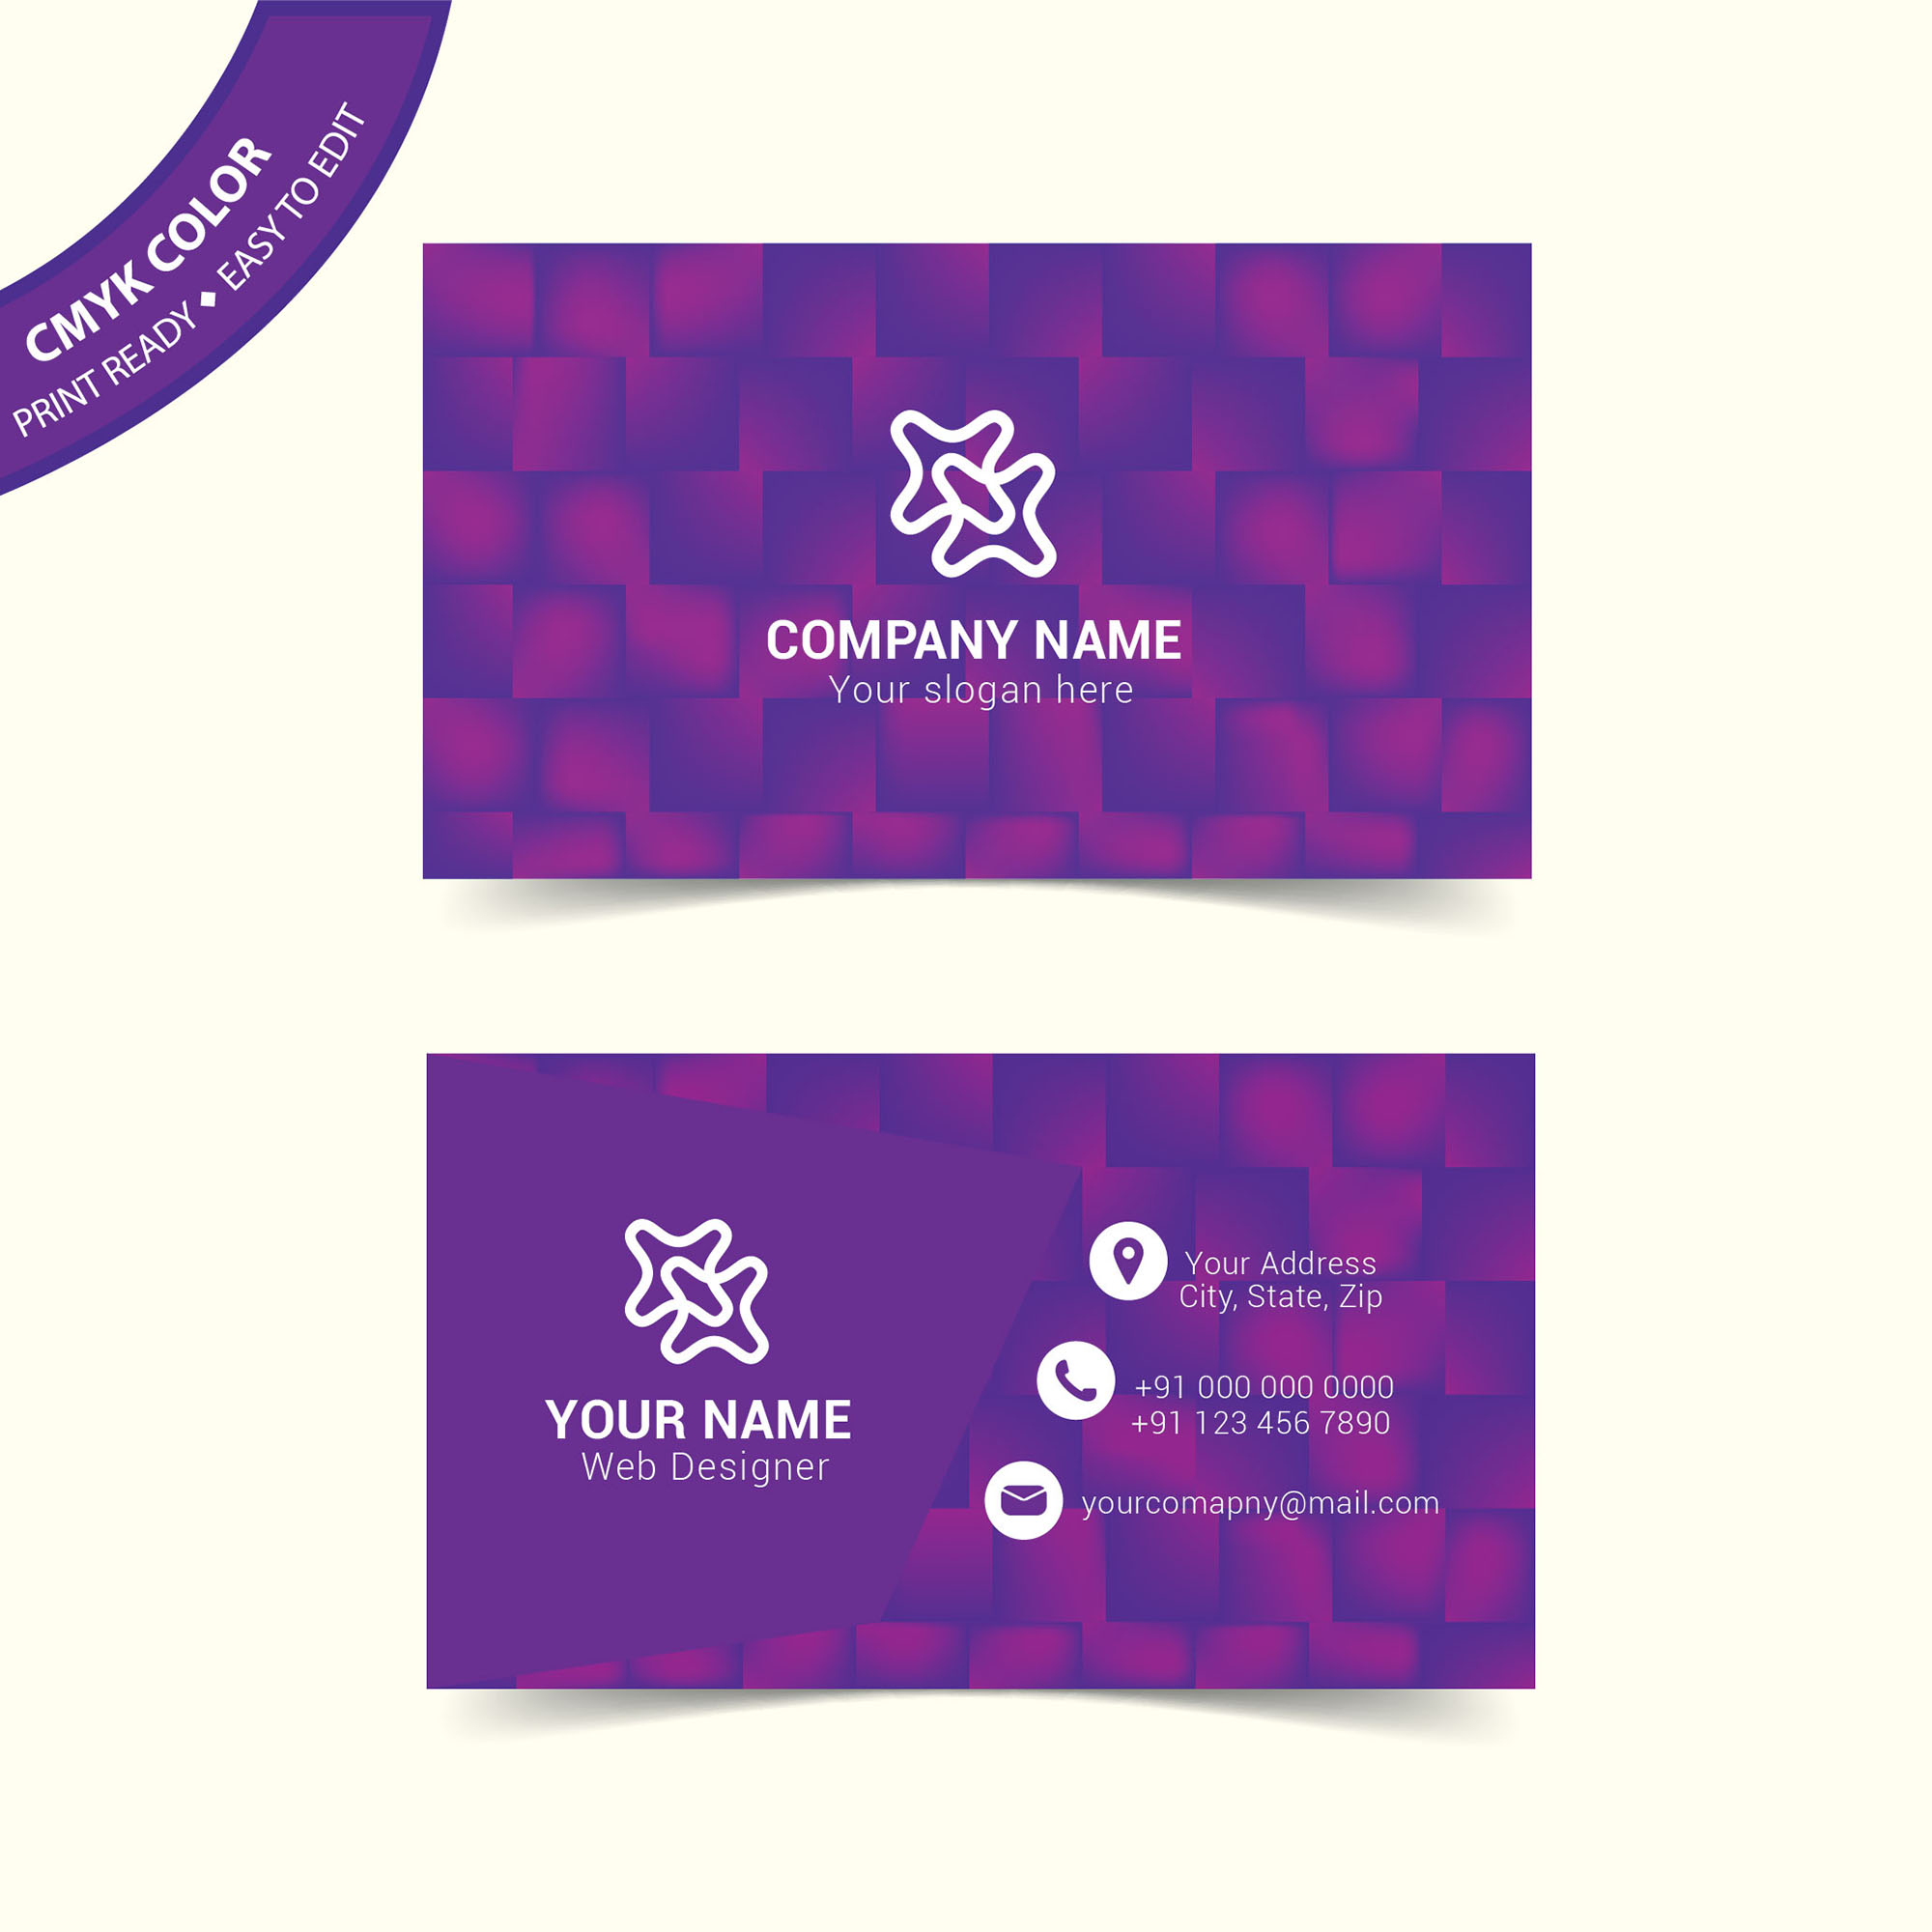 Business card vector background free download wisxi business card business cards business card design business card template design templates reheart